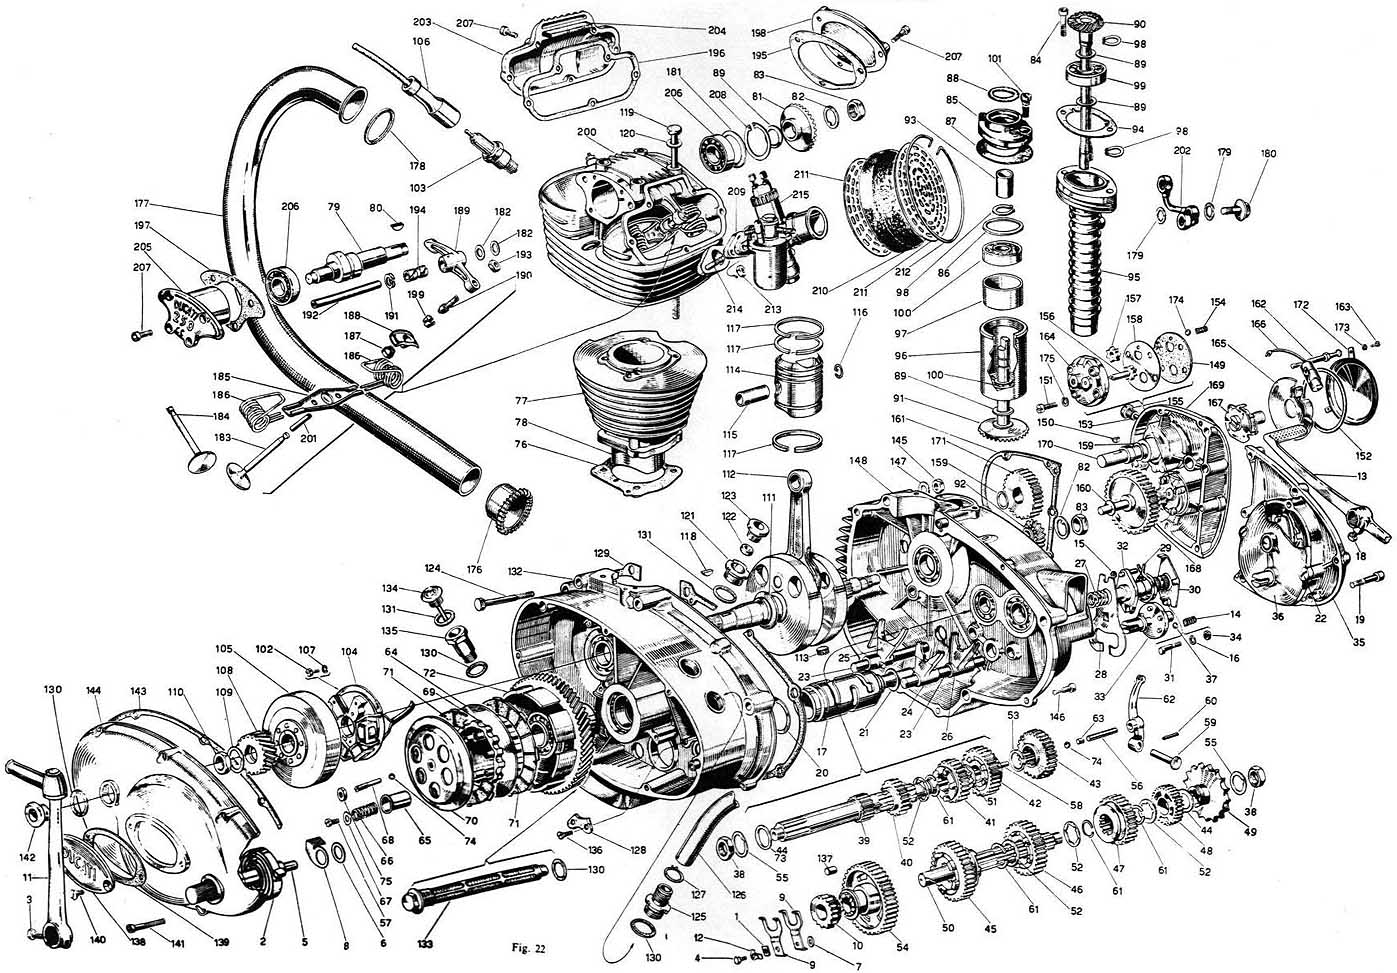 Exploded Diagram Of Motorcycle Engine on 2000 suzuki cars